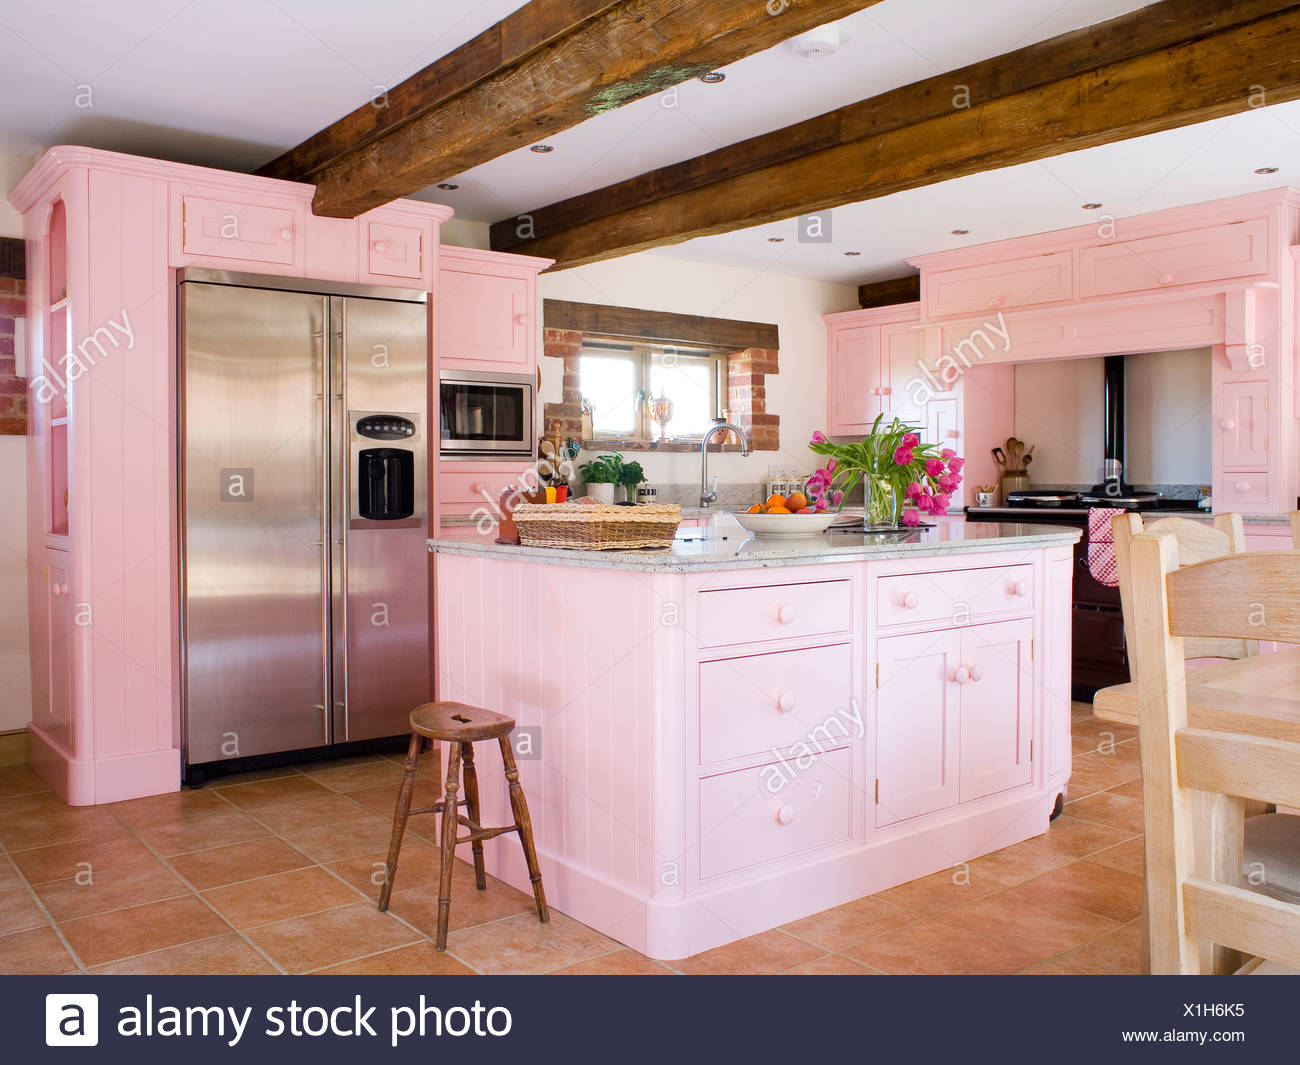 Pastel Pink Fitted Units And Island Unit In Country Kitchen With